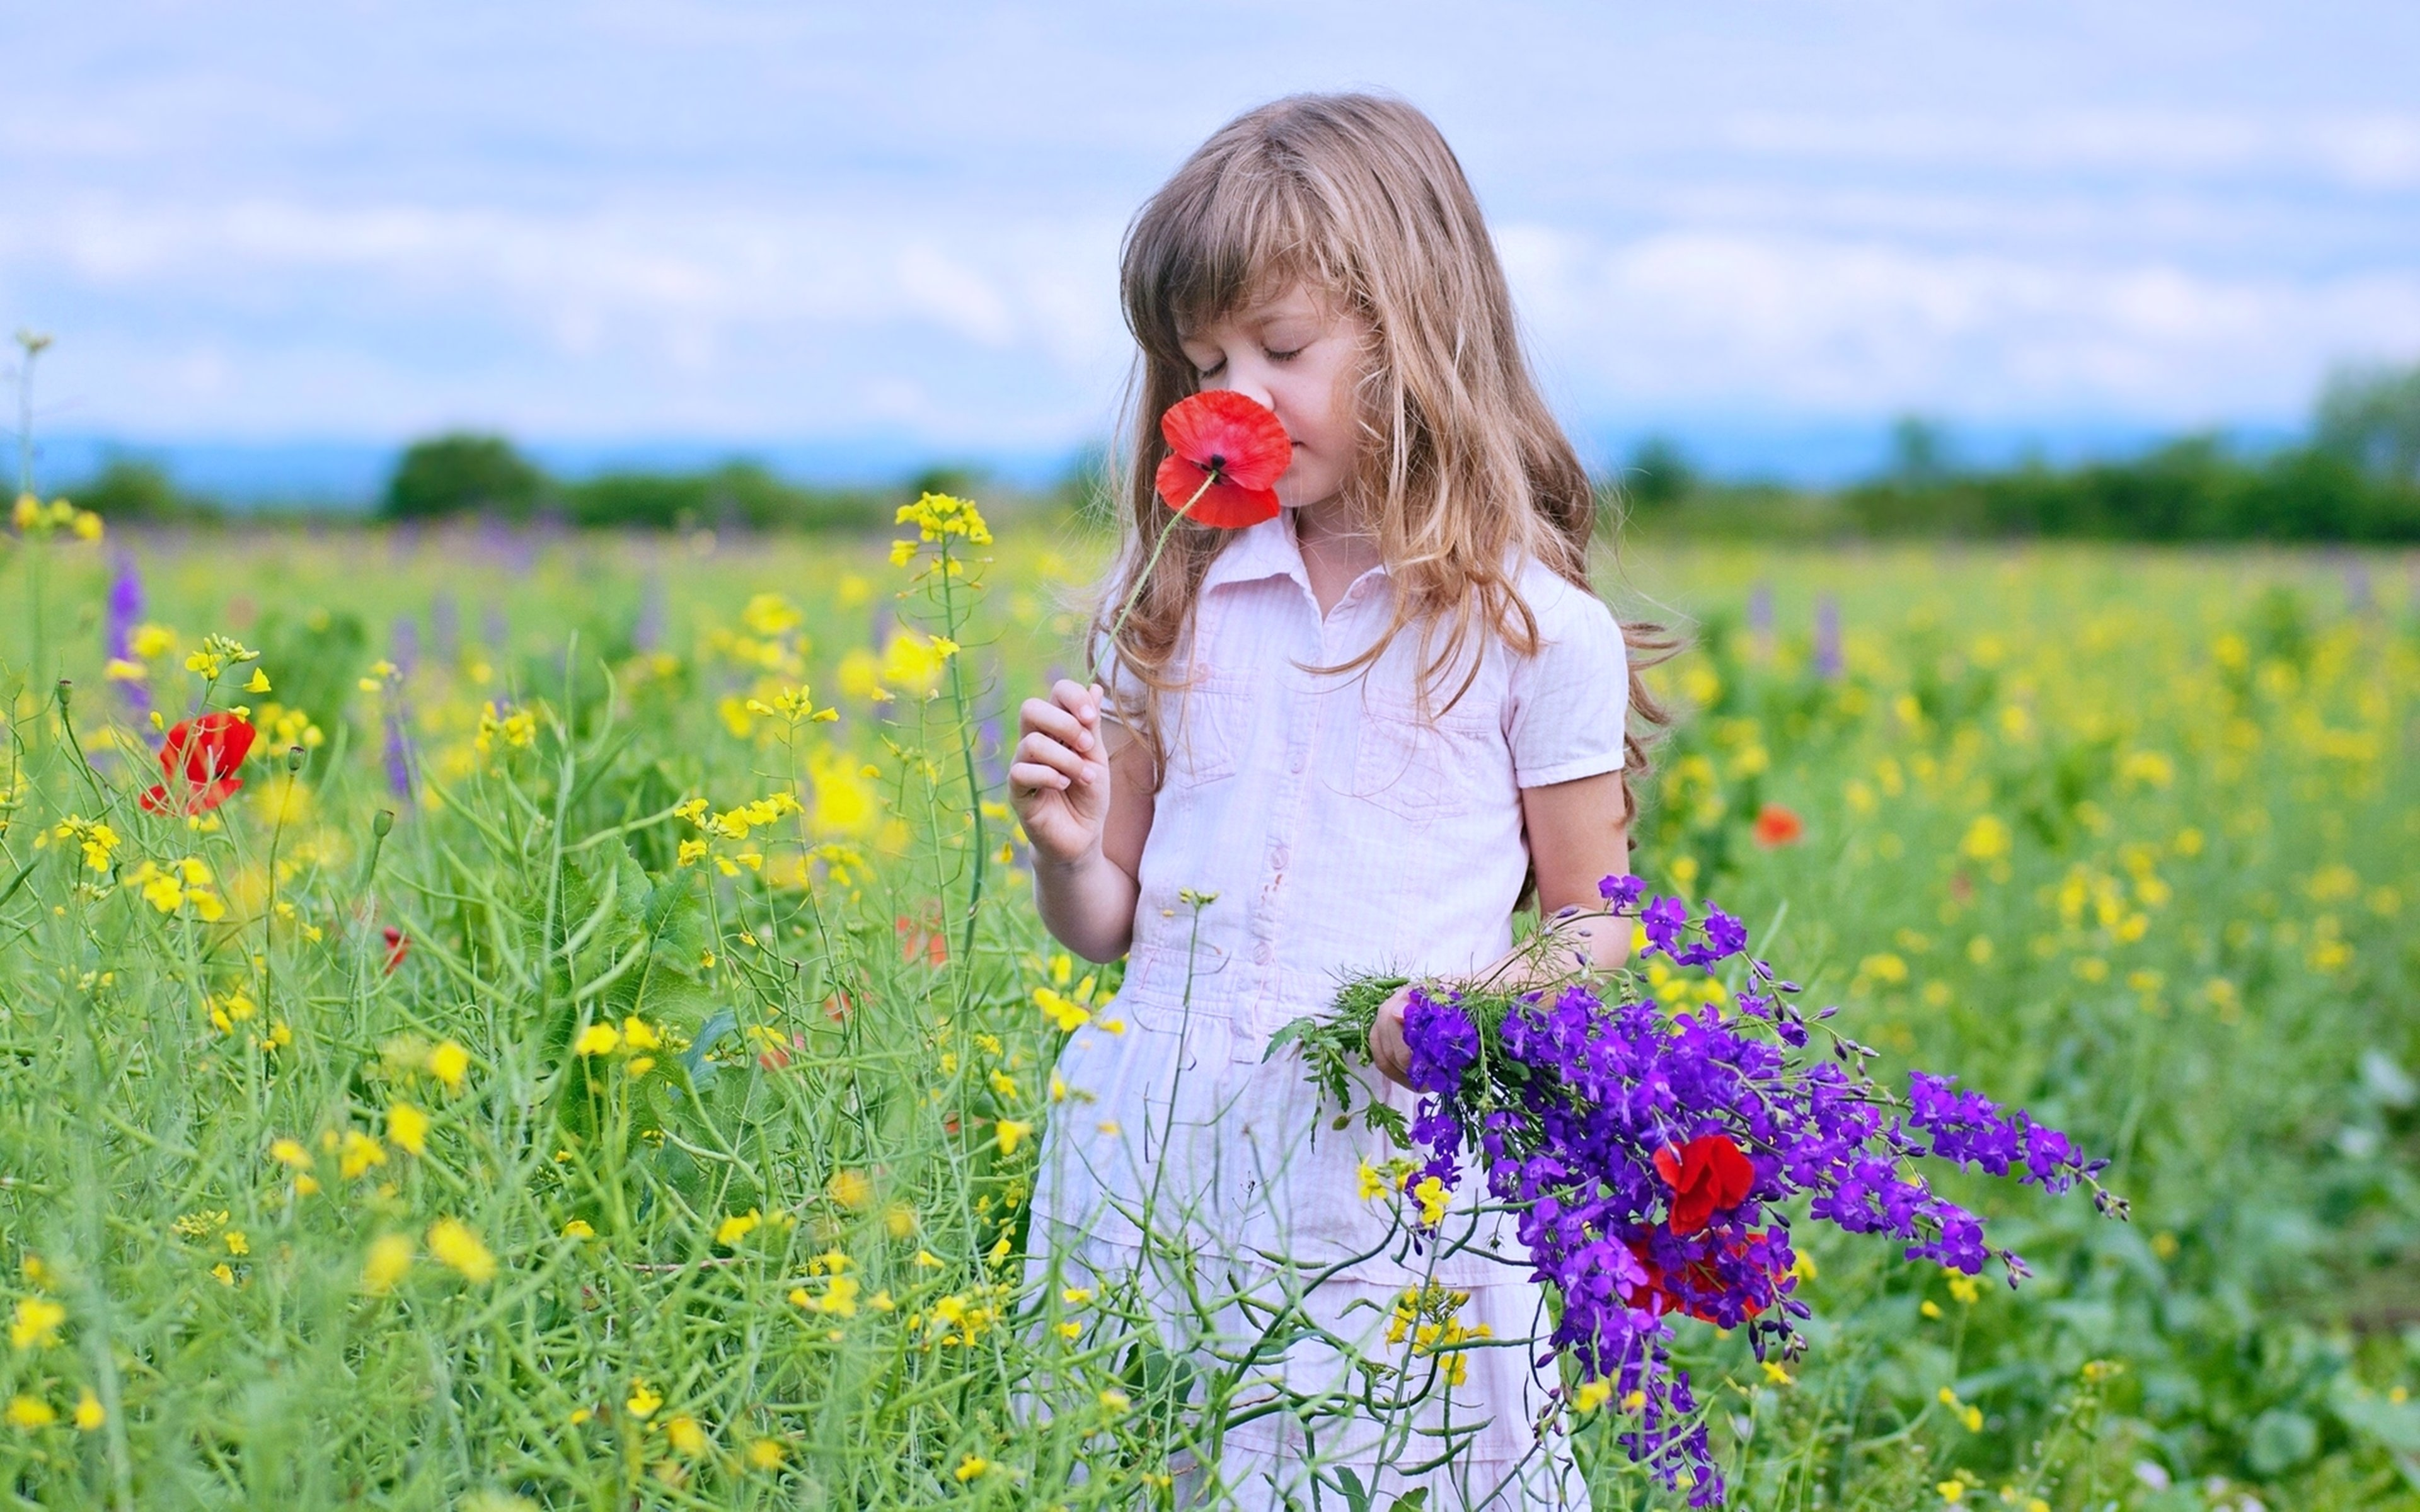 nature flower spring children flowers meadow happy fields countryside holding wallpapers landscapes joy emotions fun earth essence playing px grass